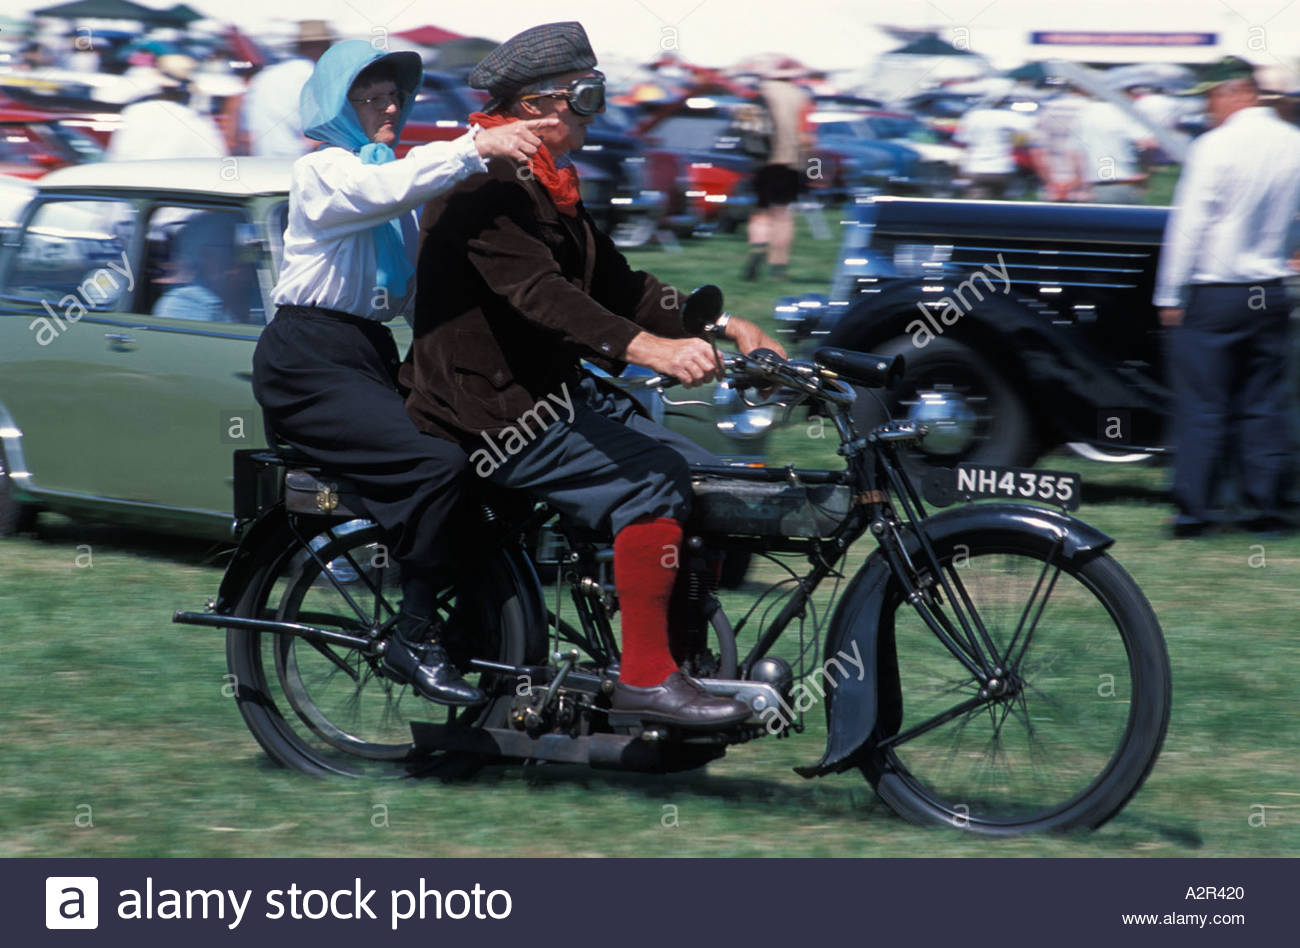 Couple on a vintage motorcycle at the Gloucester Steam Fair, UK - Stock Image